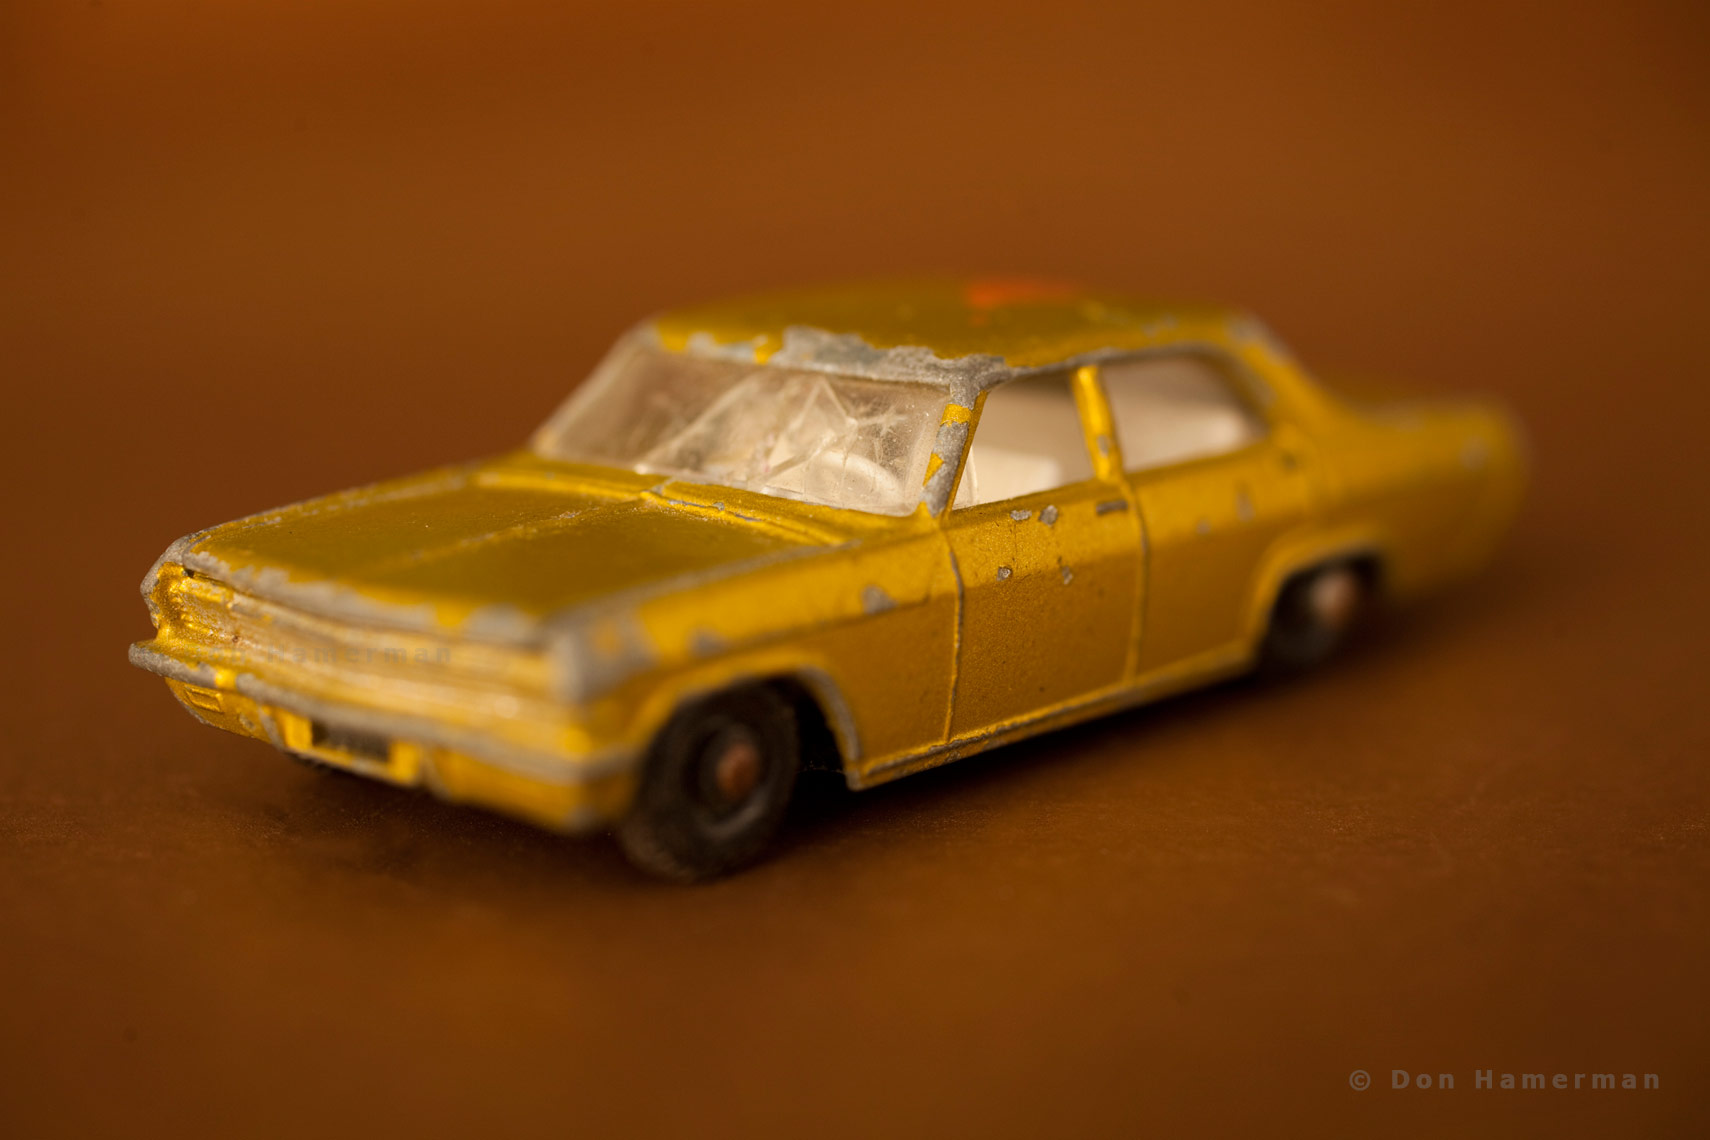 04_hamerman_matchbox.jpg